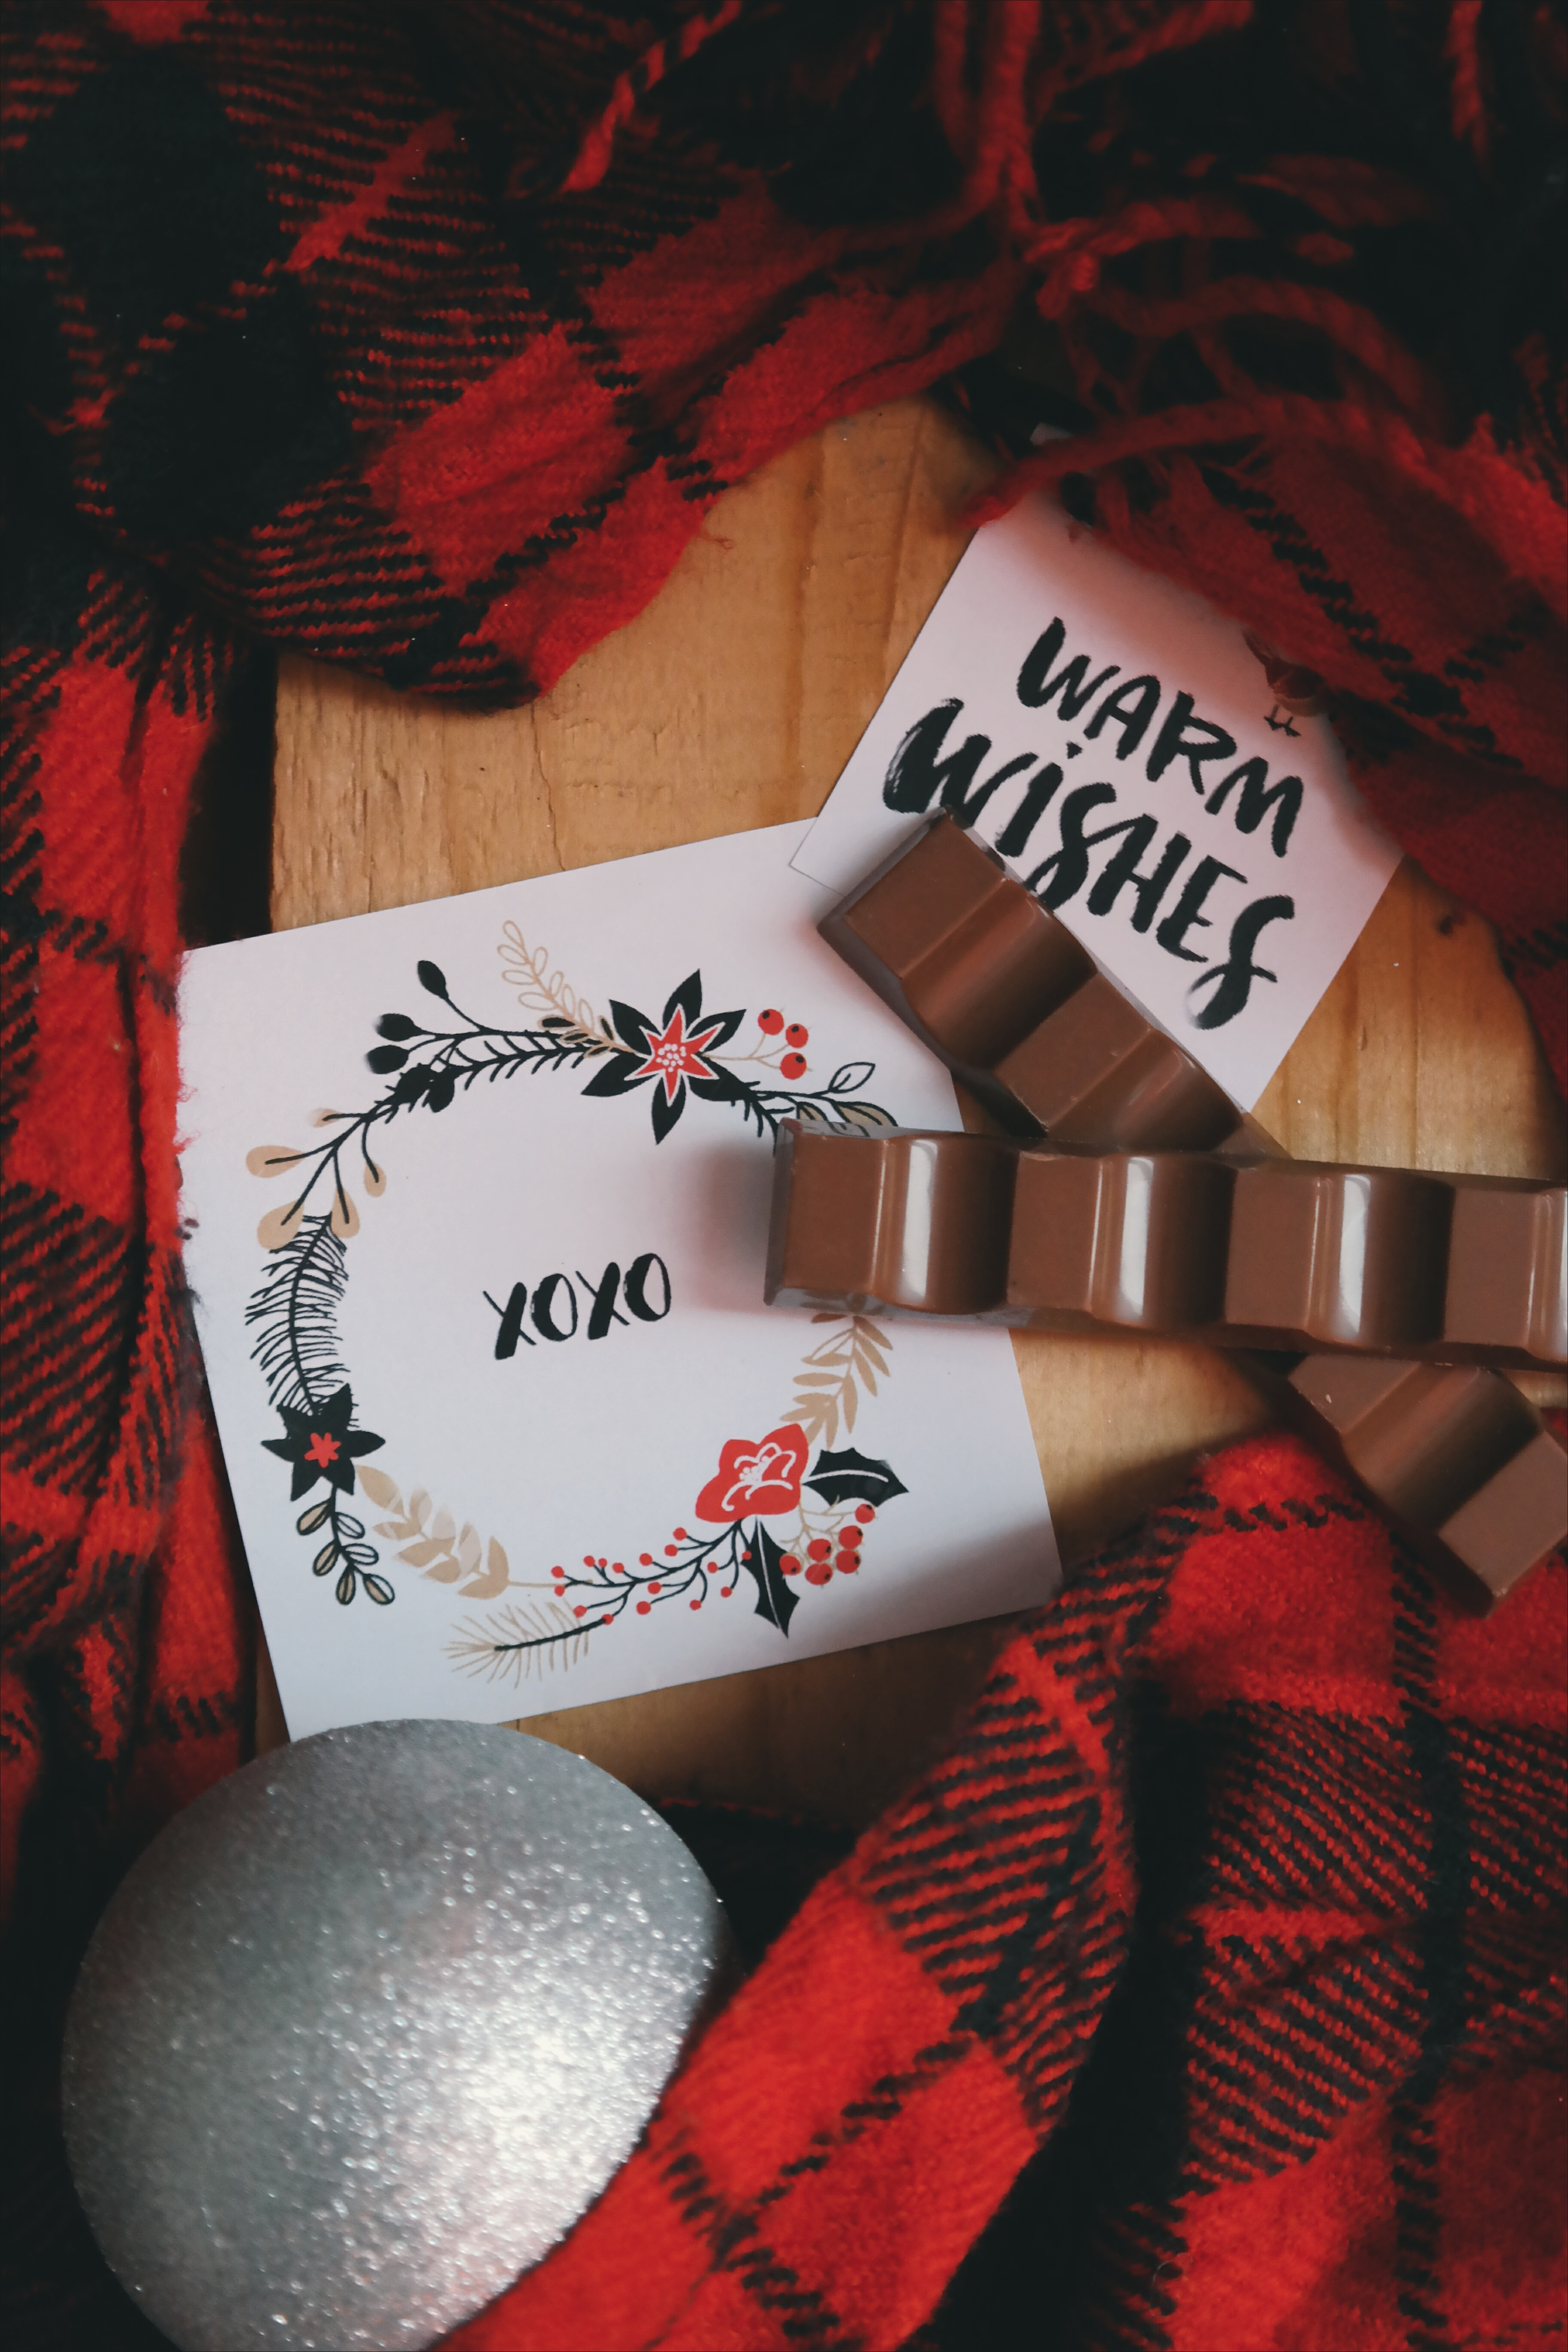 An XOXO note next to a gray Christmas ornament and red plaid fabric.